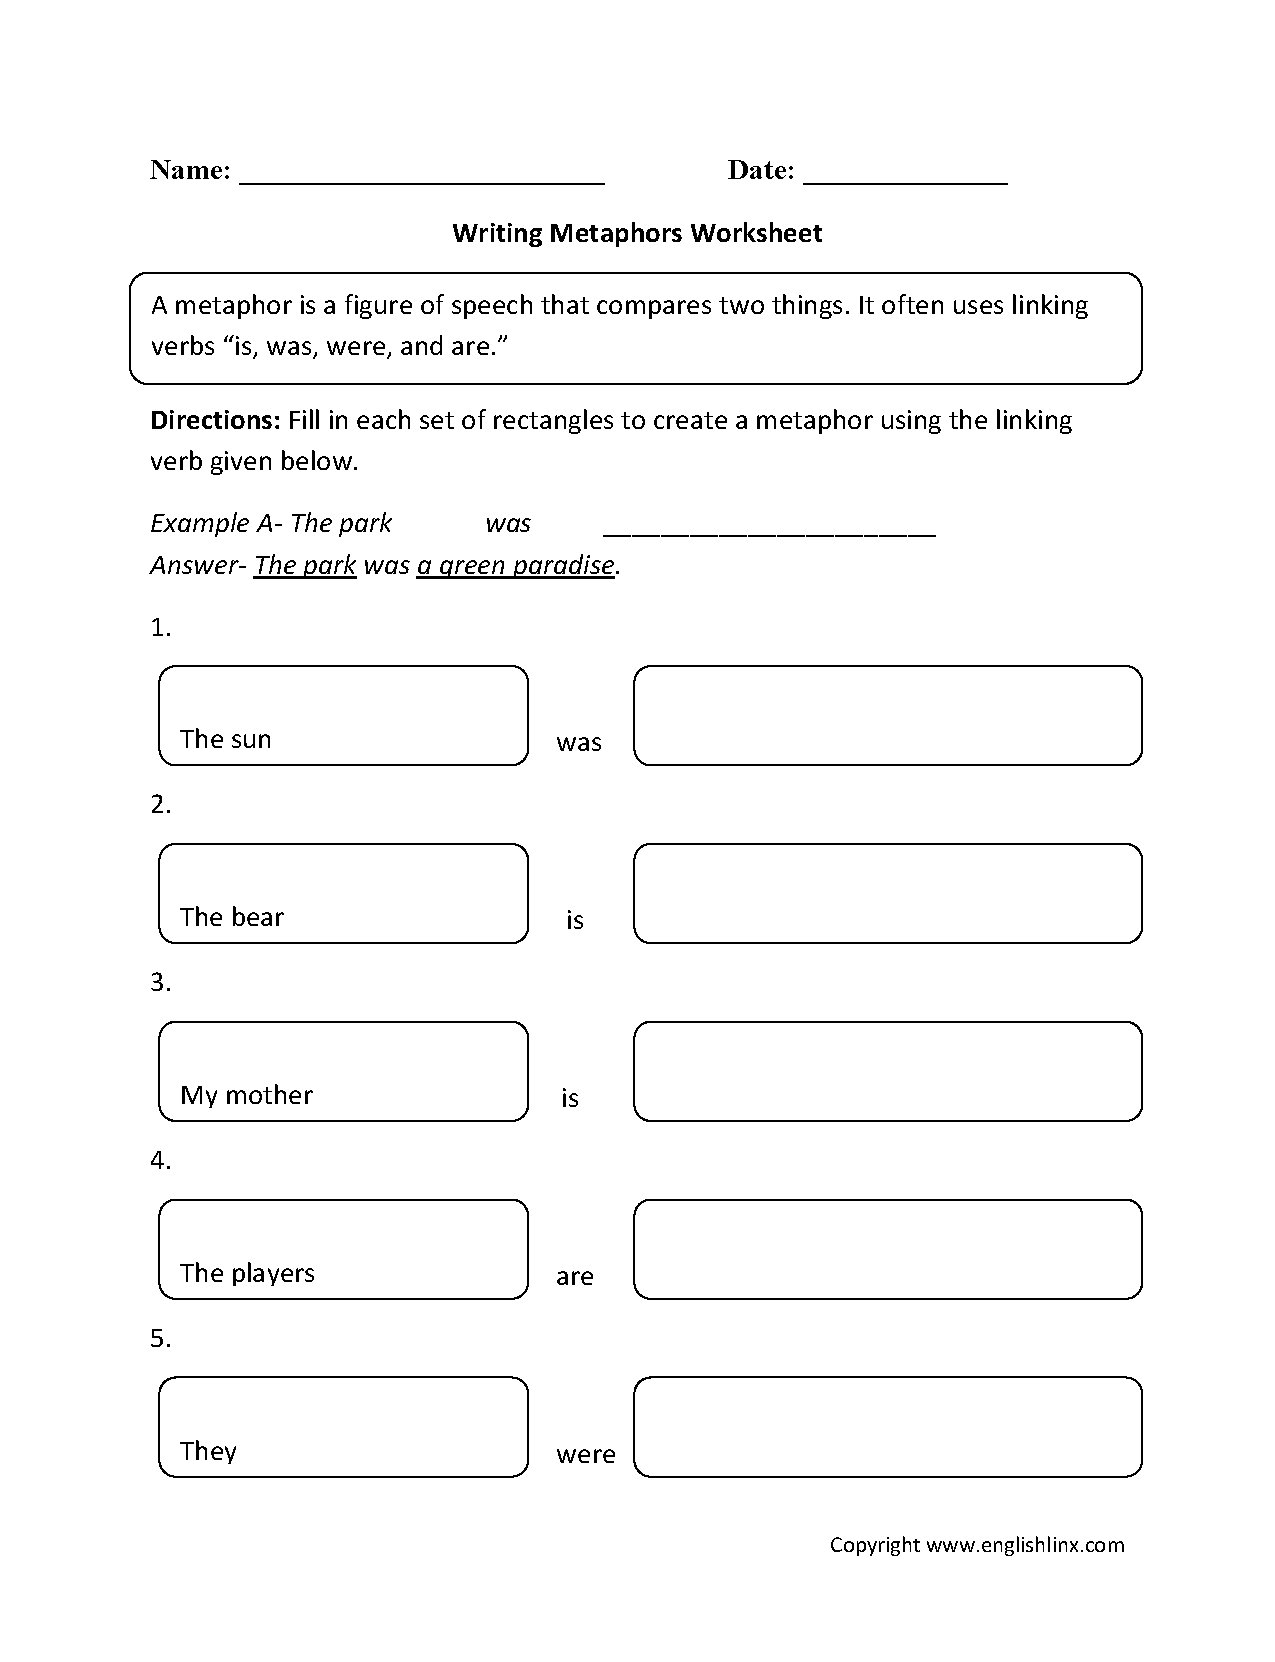 Worksheets Fifth Grade Writing Worksheets writing metaphors worksheet part 1 beginner englishlinx com beginner